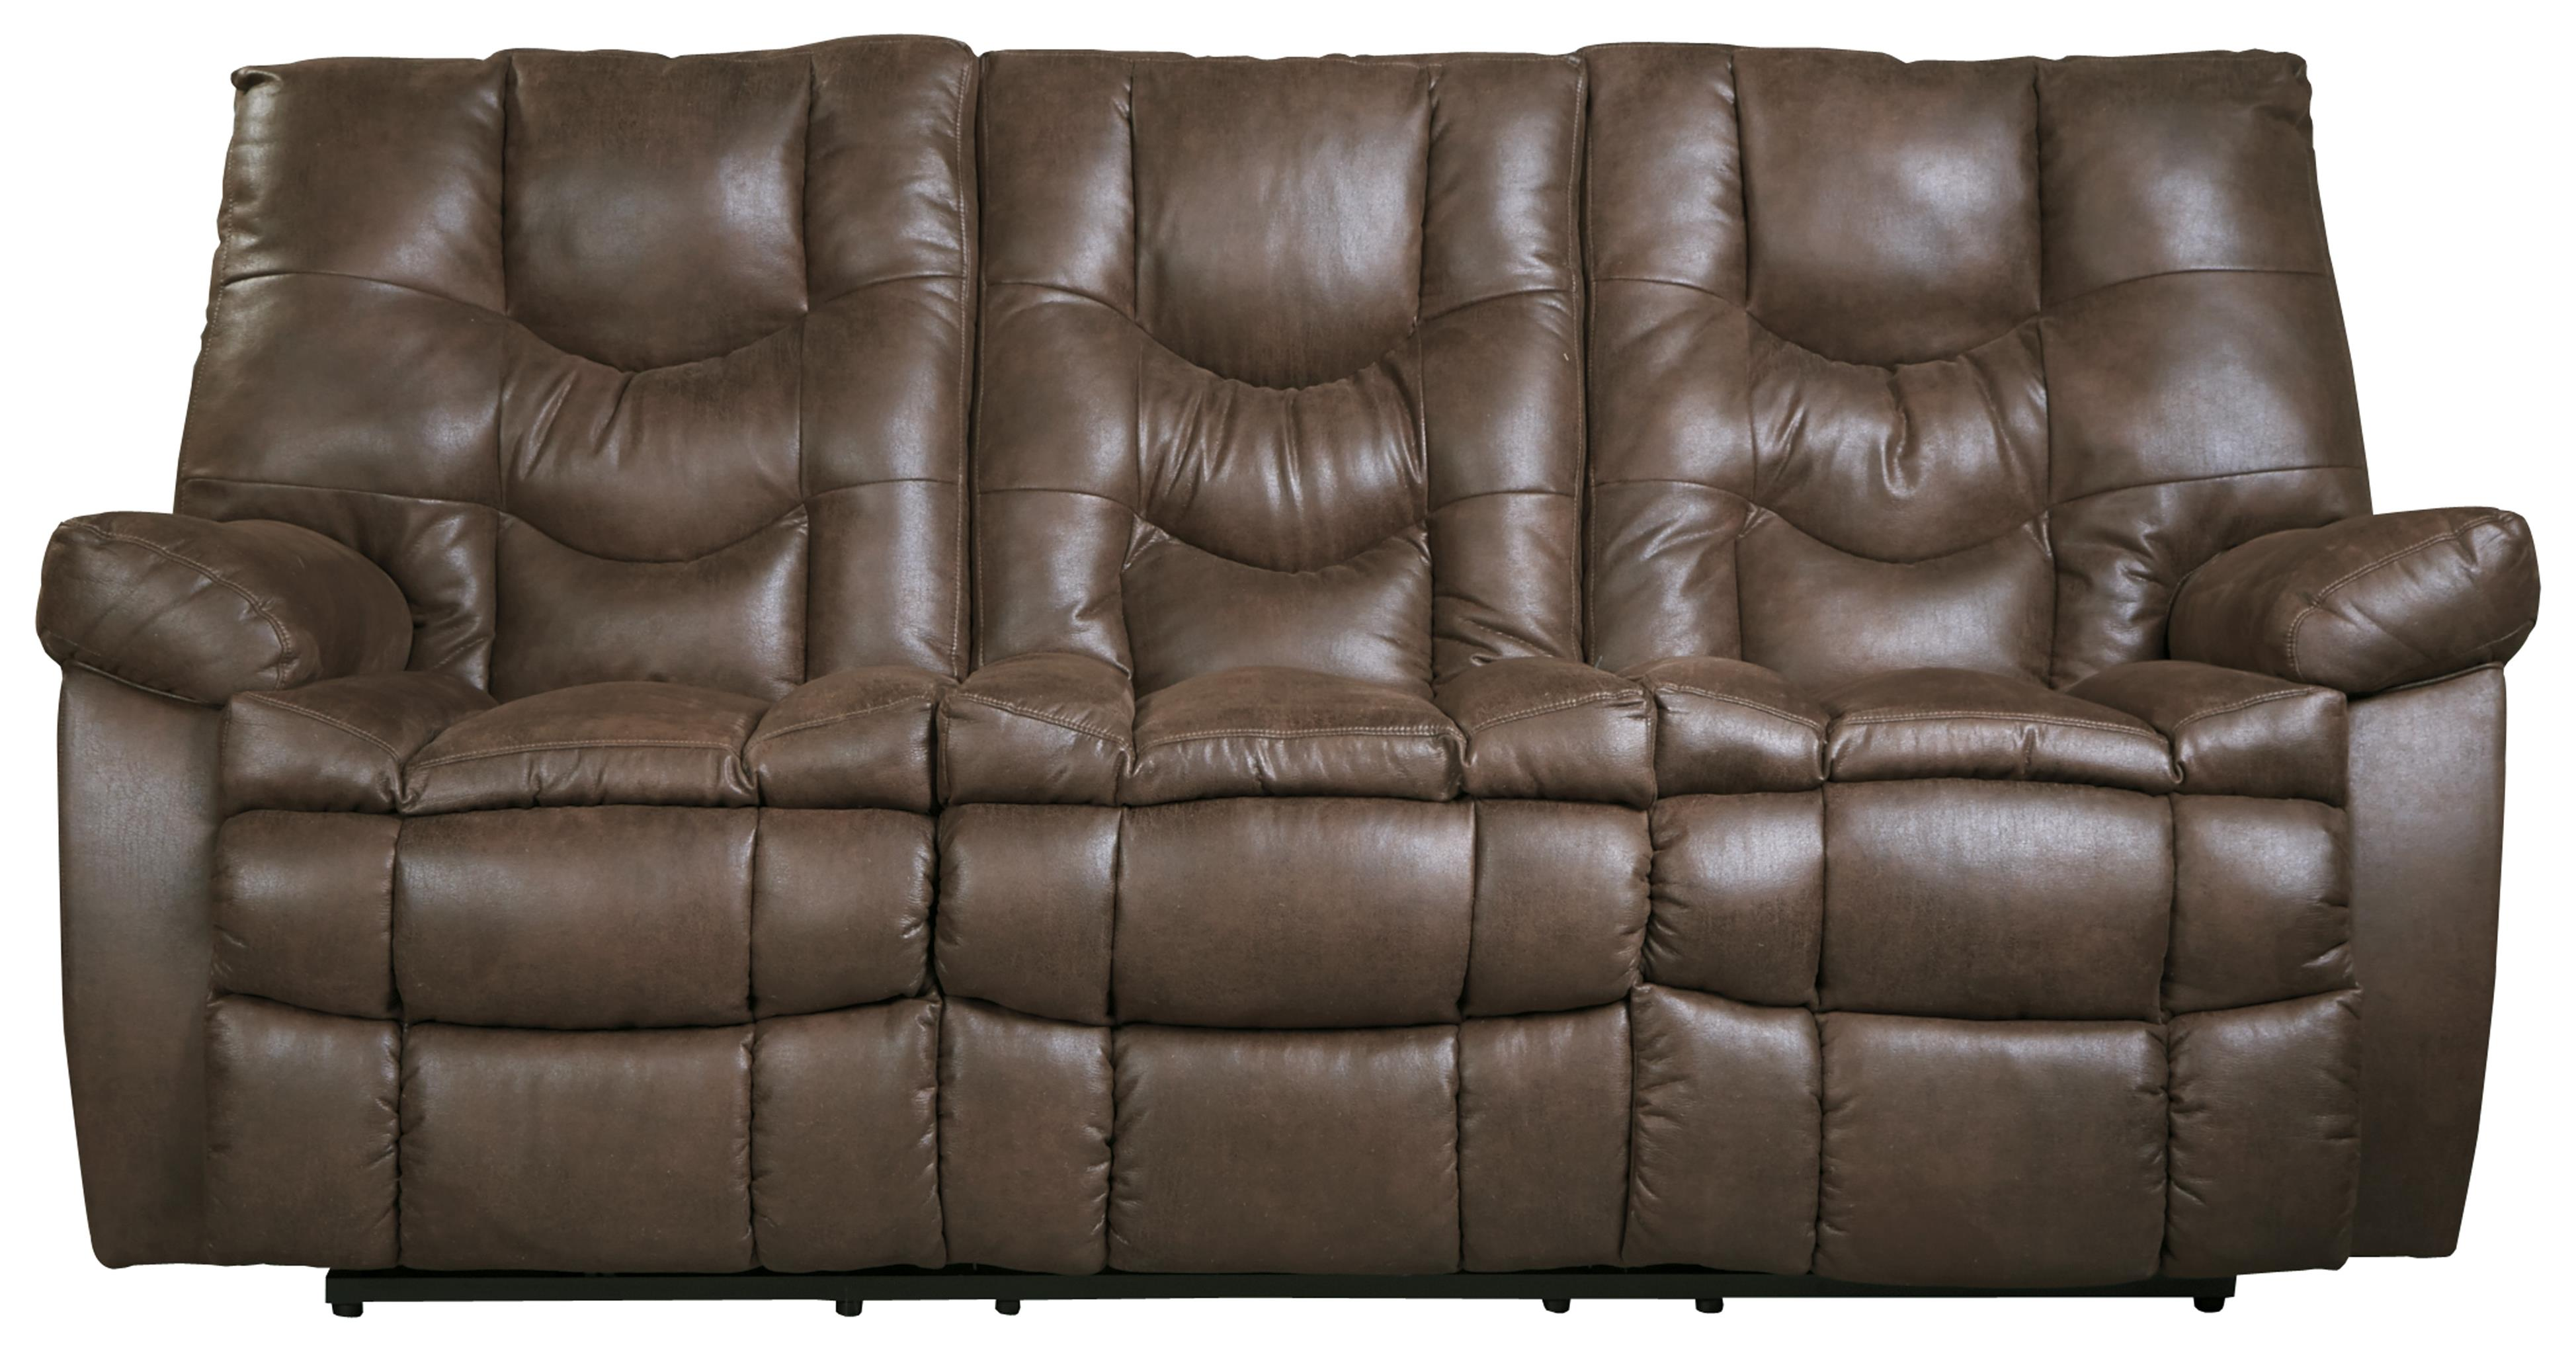 Benchcraft Burgett Reclining Power Sofa - Item Number: 9220187